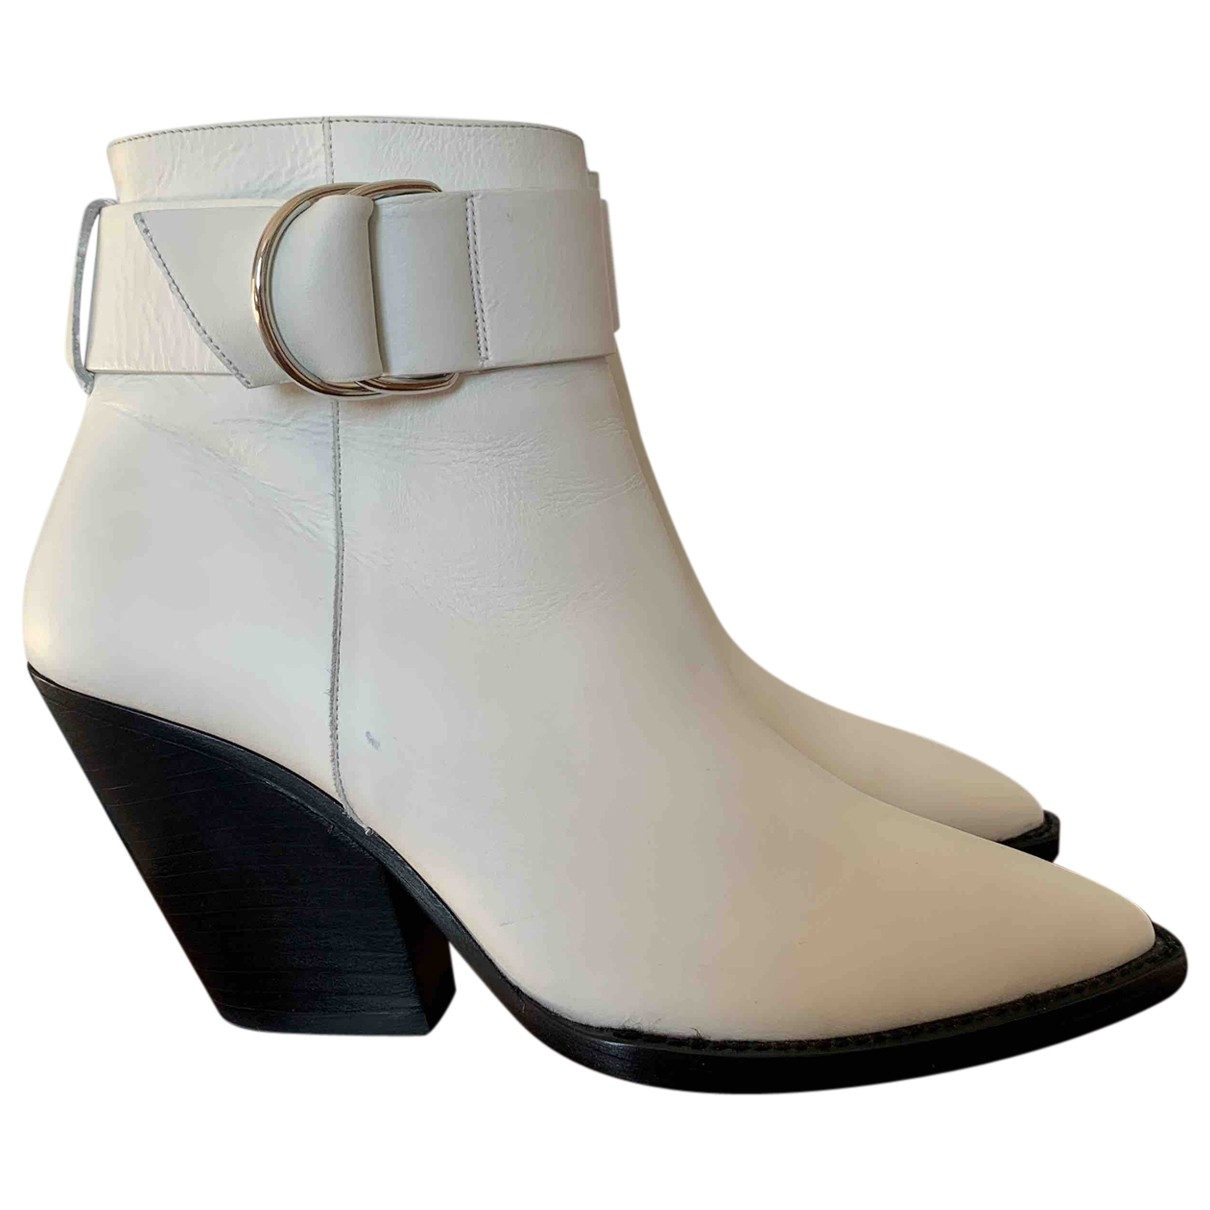 Iro Spring Summer 2019 White Leather Boots for Women 41 EU